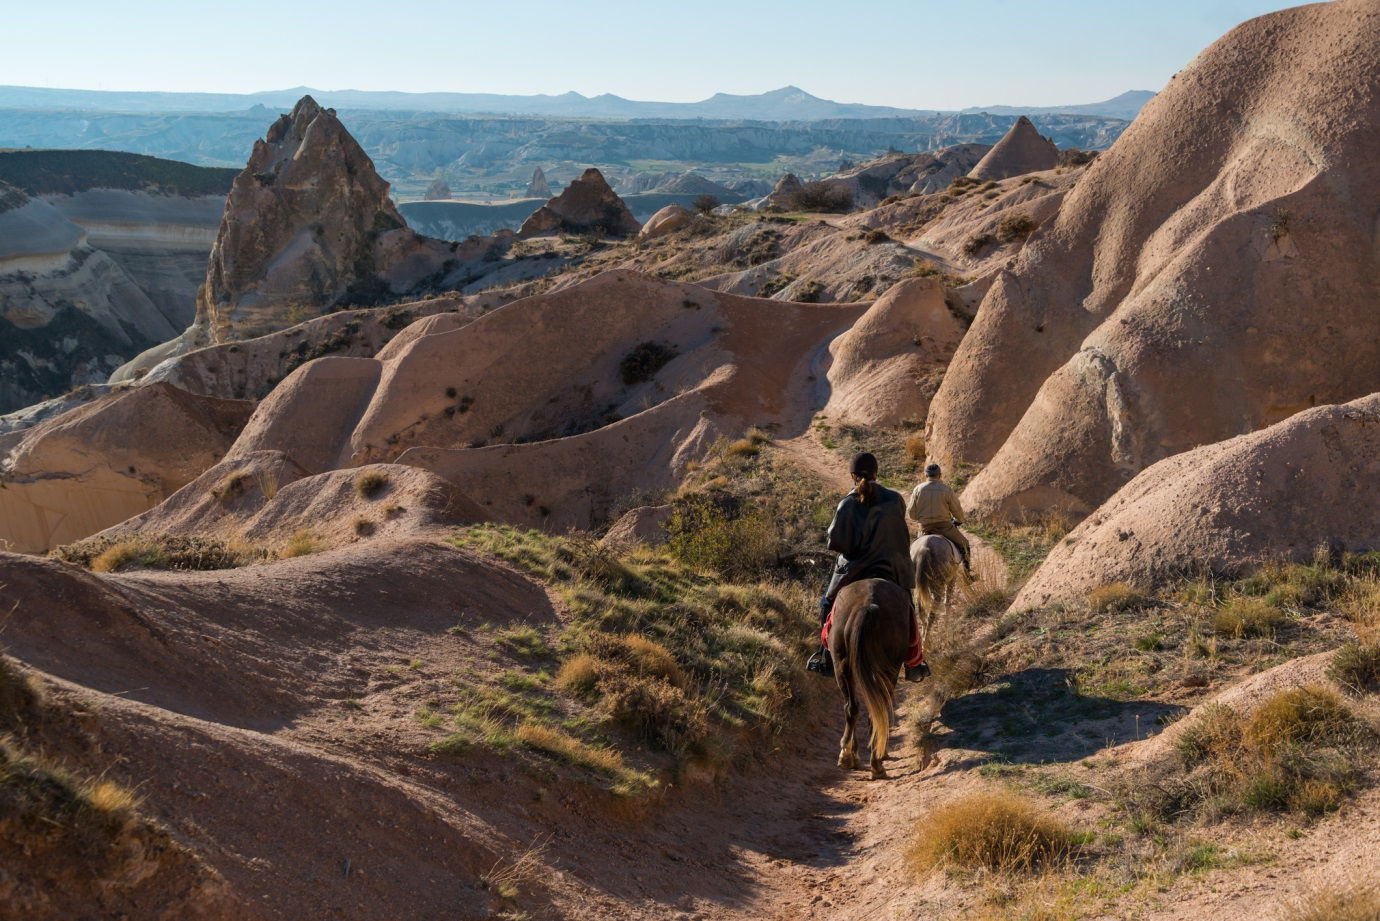 You can go horse riding in many places in Turkey, including a hack through the Cappadocia mountains